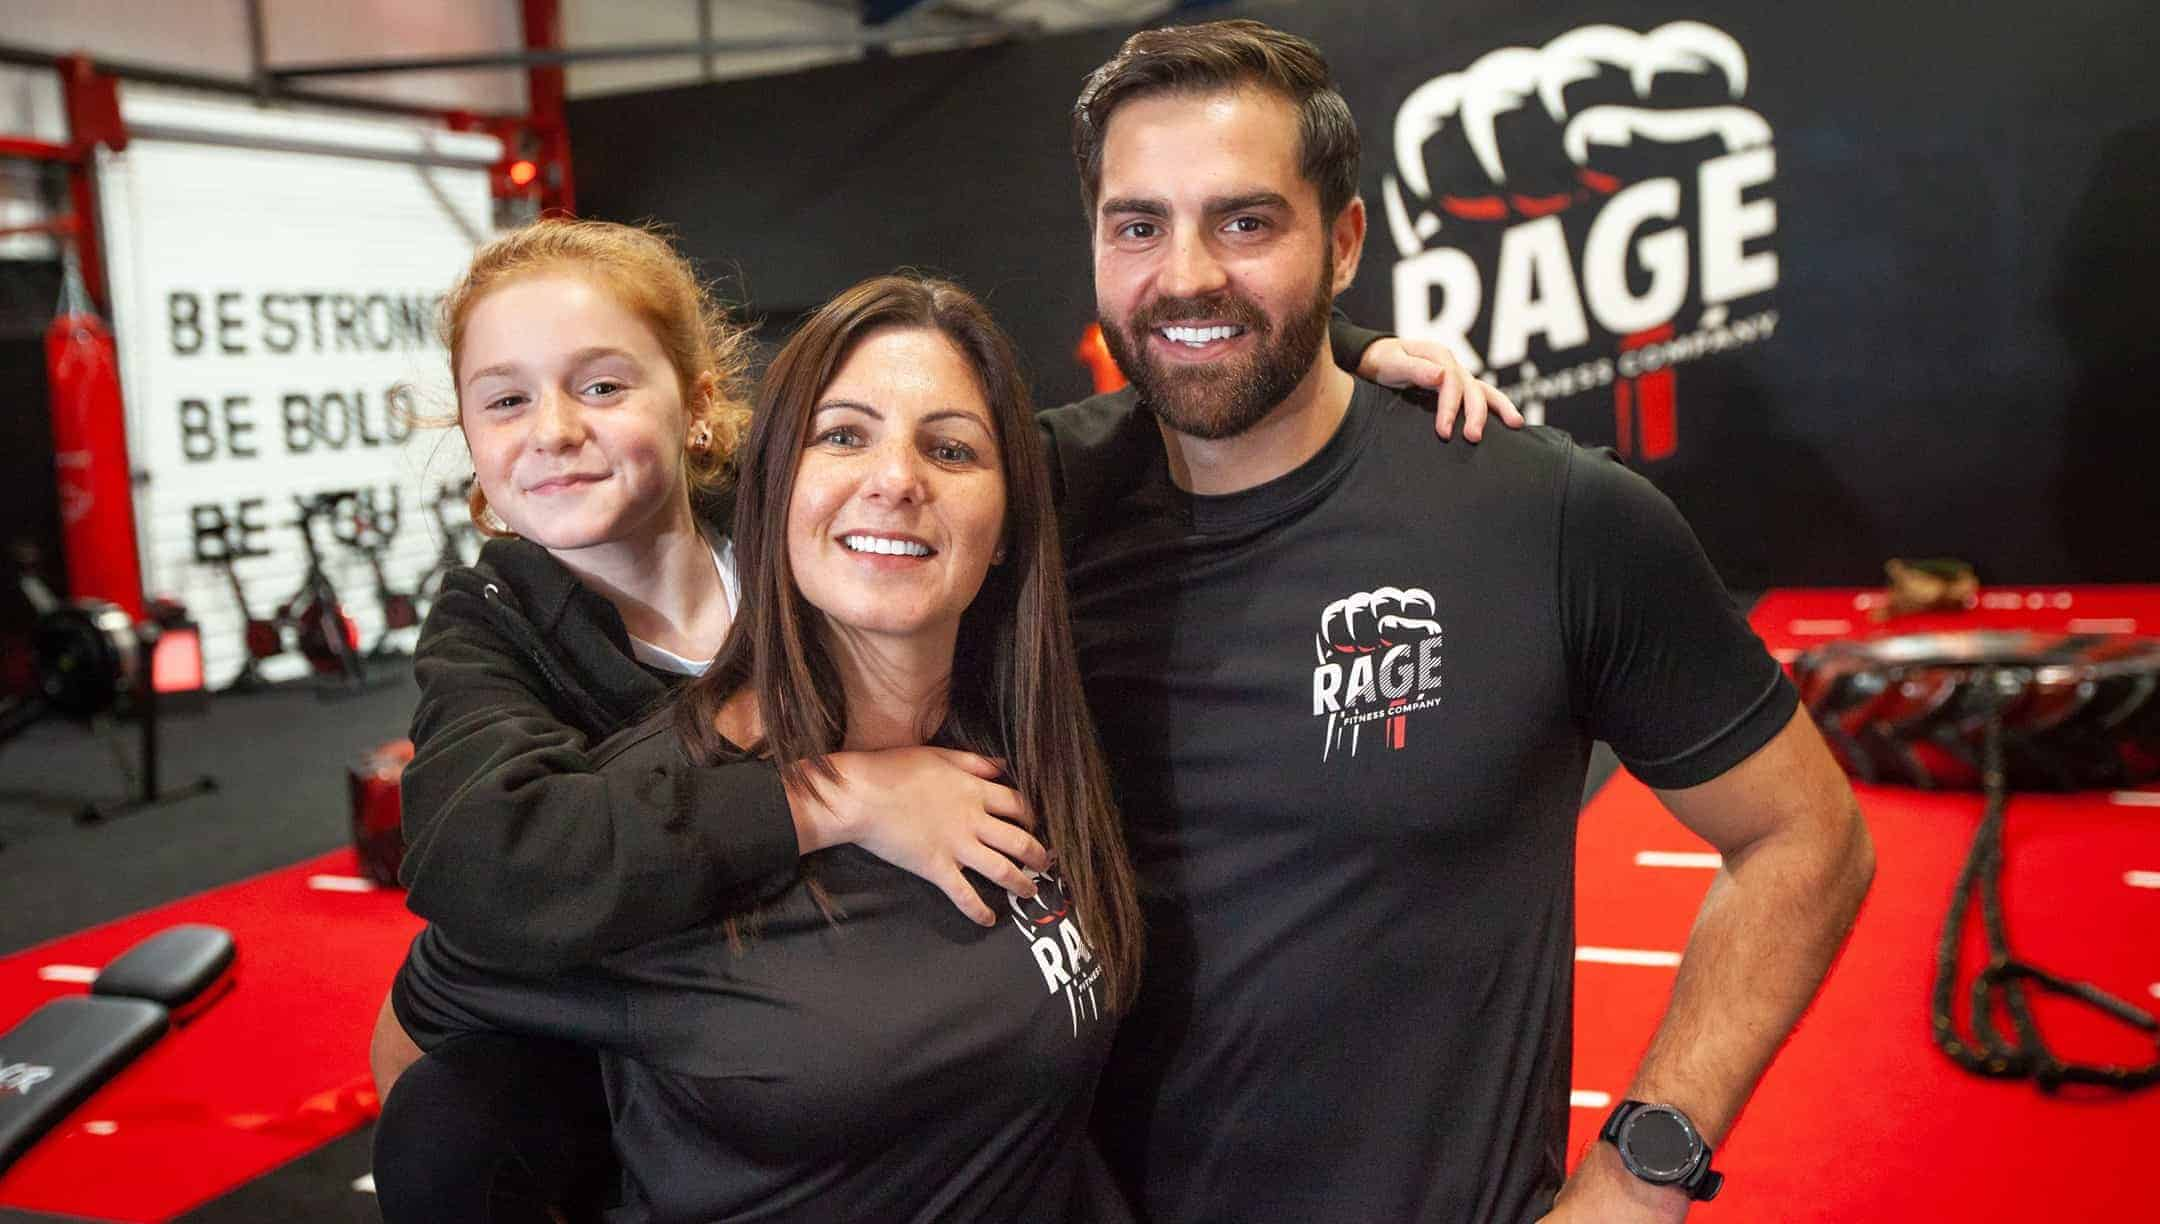 Rage Fitness Gym Launch